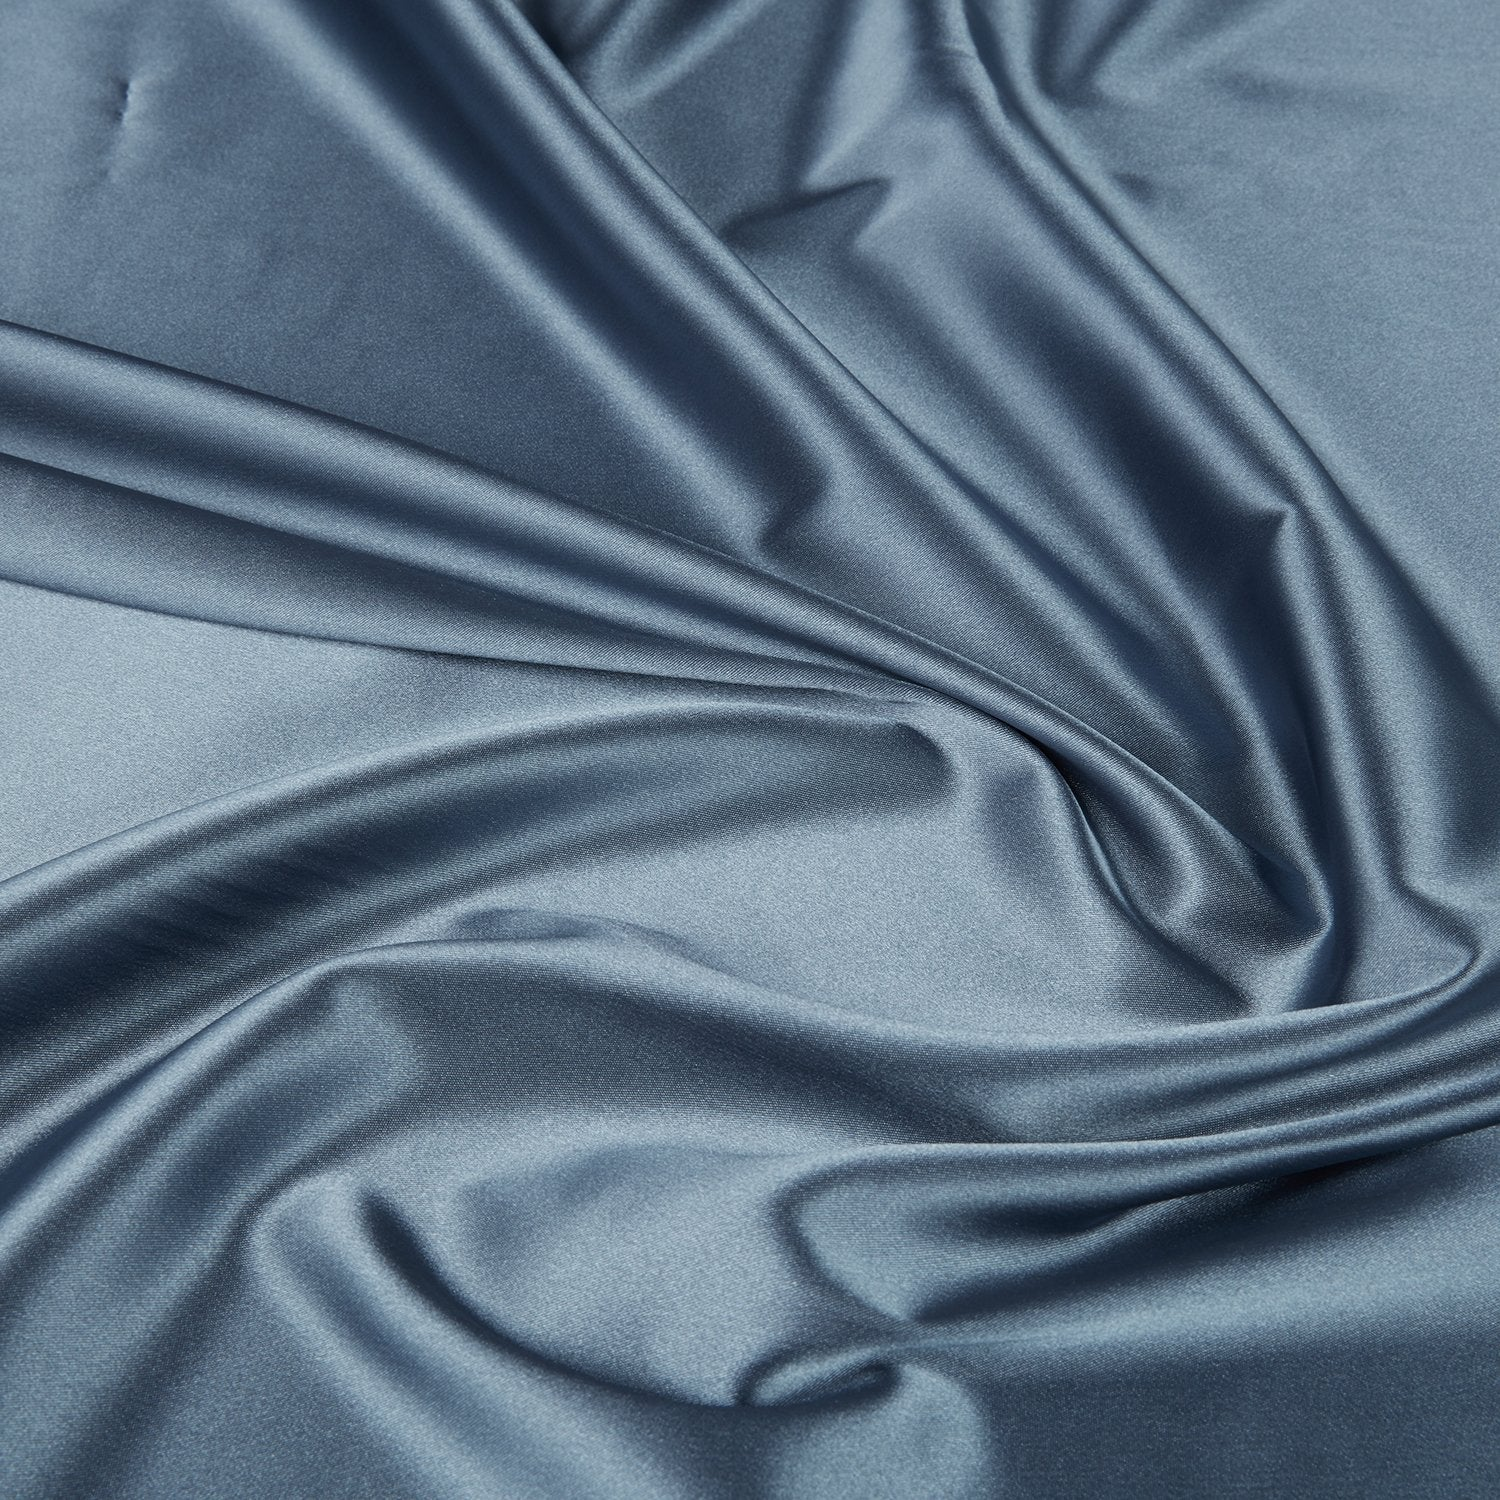 METAL GREY | 1173-GREY - SOLID ANNABELLE STRETCH SATIN - Zelouf Fabrics